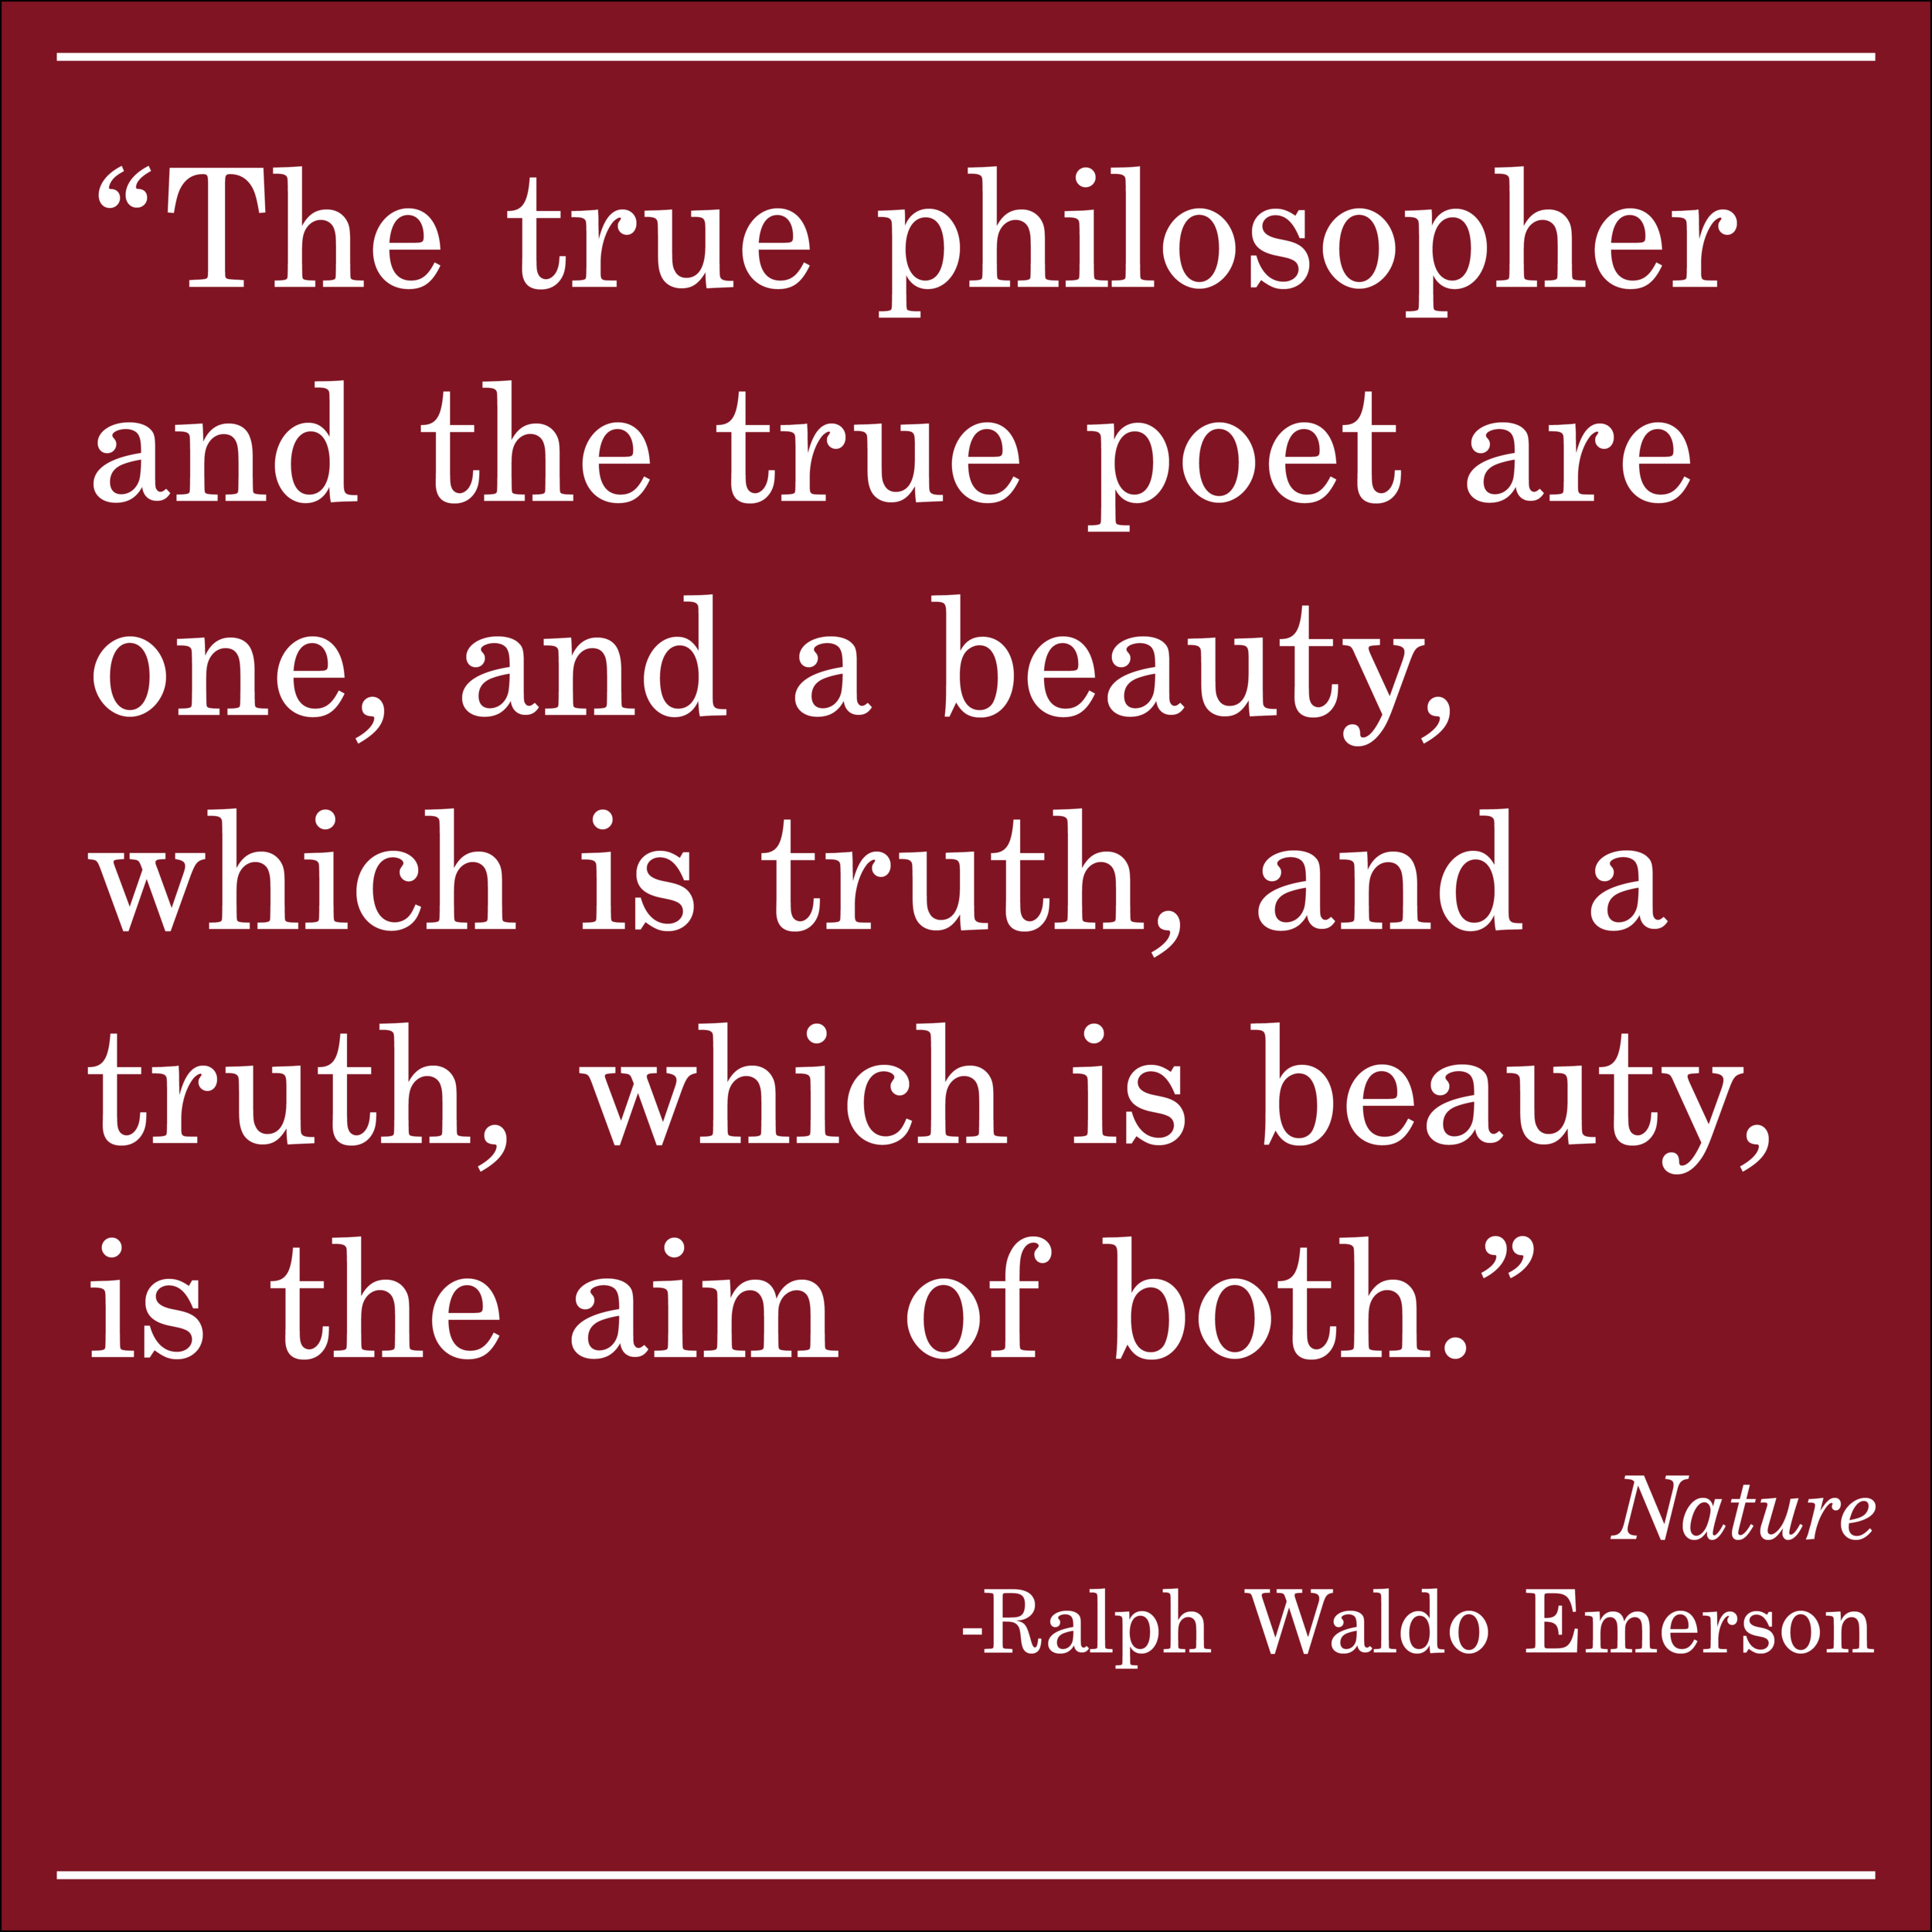 Daily Quote Ralph Waldo Emerson Nature